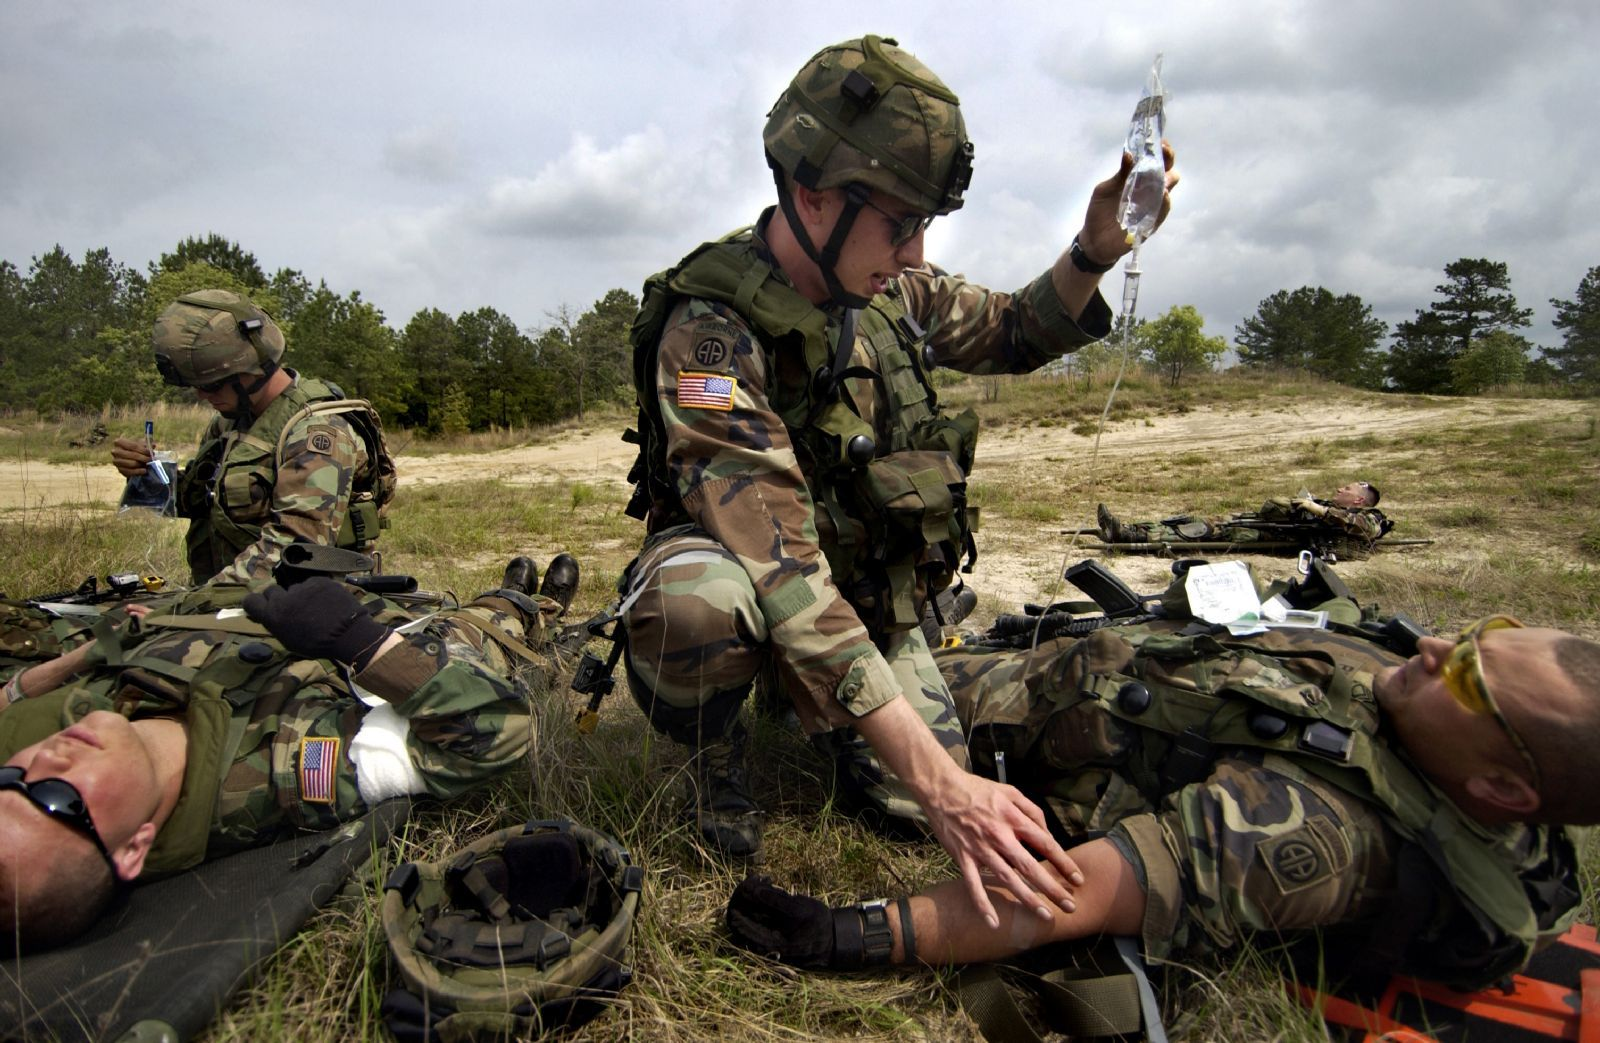 Applying Military Medical Training to Civilian Careers